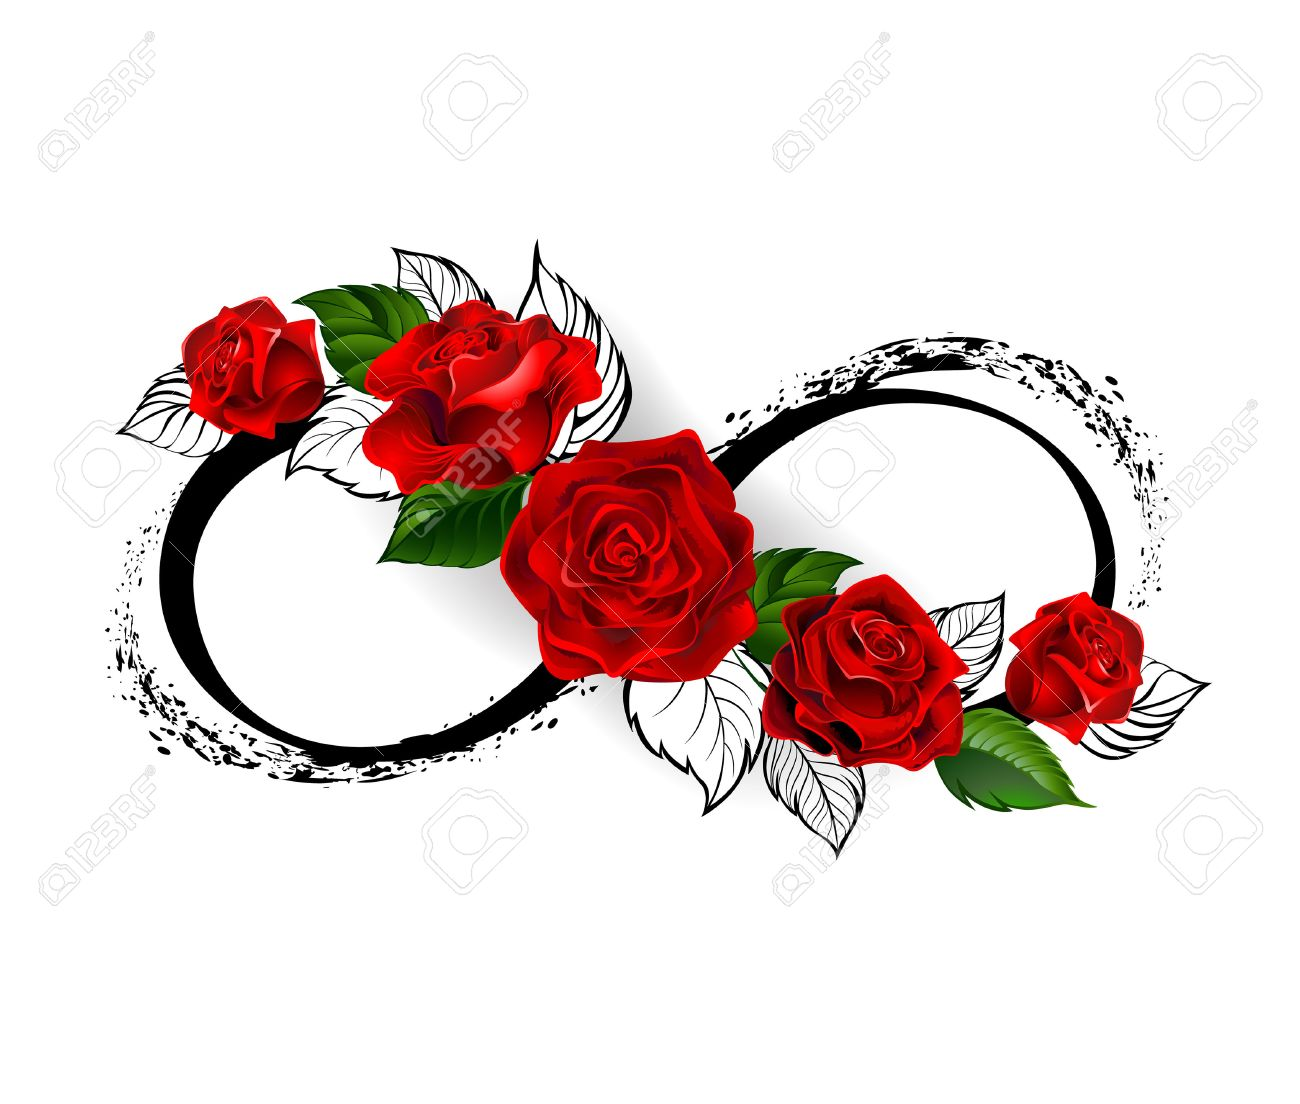 infinity symbol with red roses and black stalks on a white background. Design with roses. Tattoo style. Gothic style. Tribal graphics. Style sketch. - 58393287